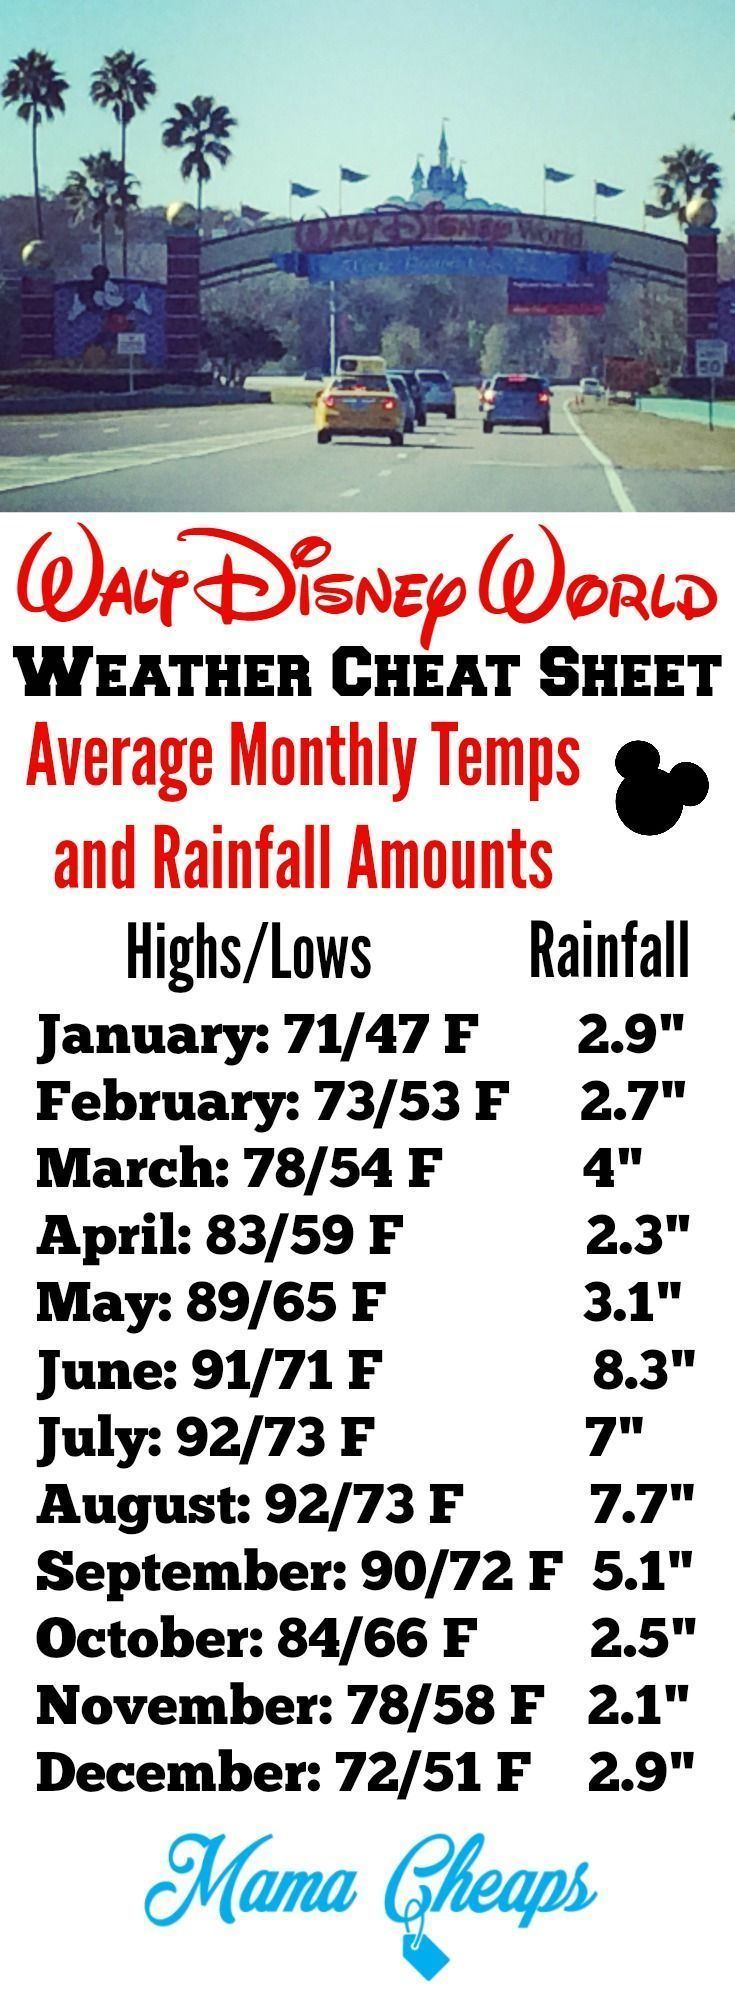 meteorology cheat sheet Contrary to popular belief, it's possible to get the best of both worlds when you retire — weather-wise at least scouting cities with the best weather year-round takes some time some .